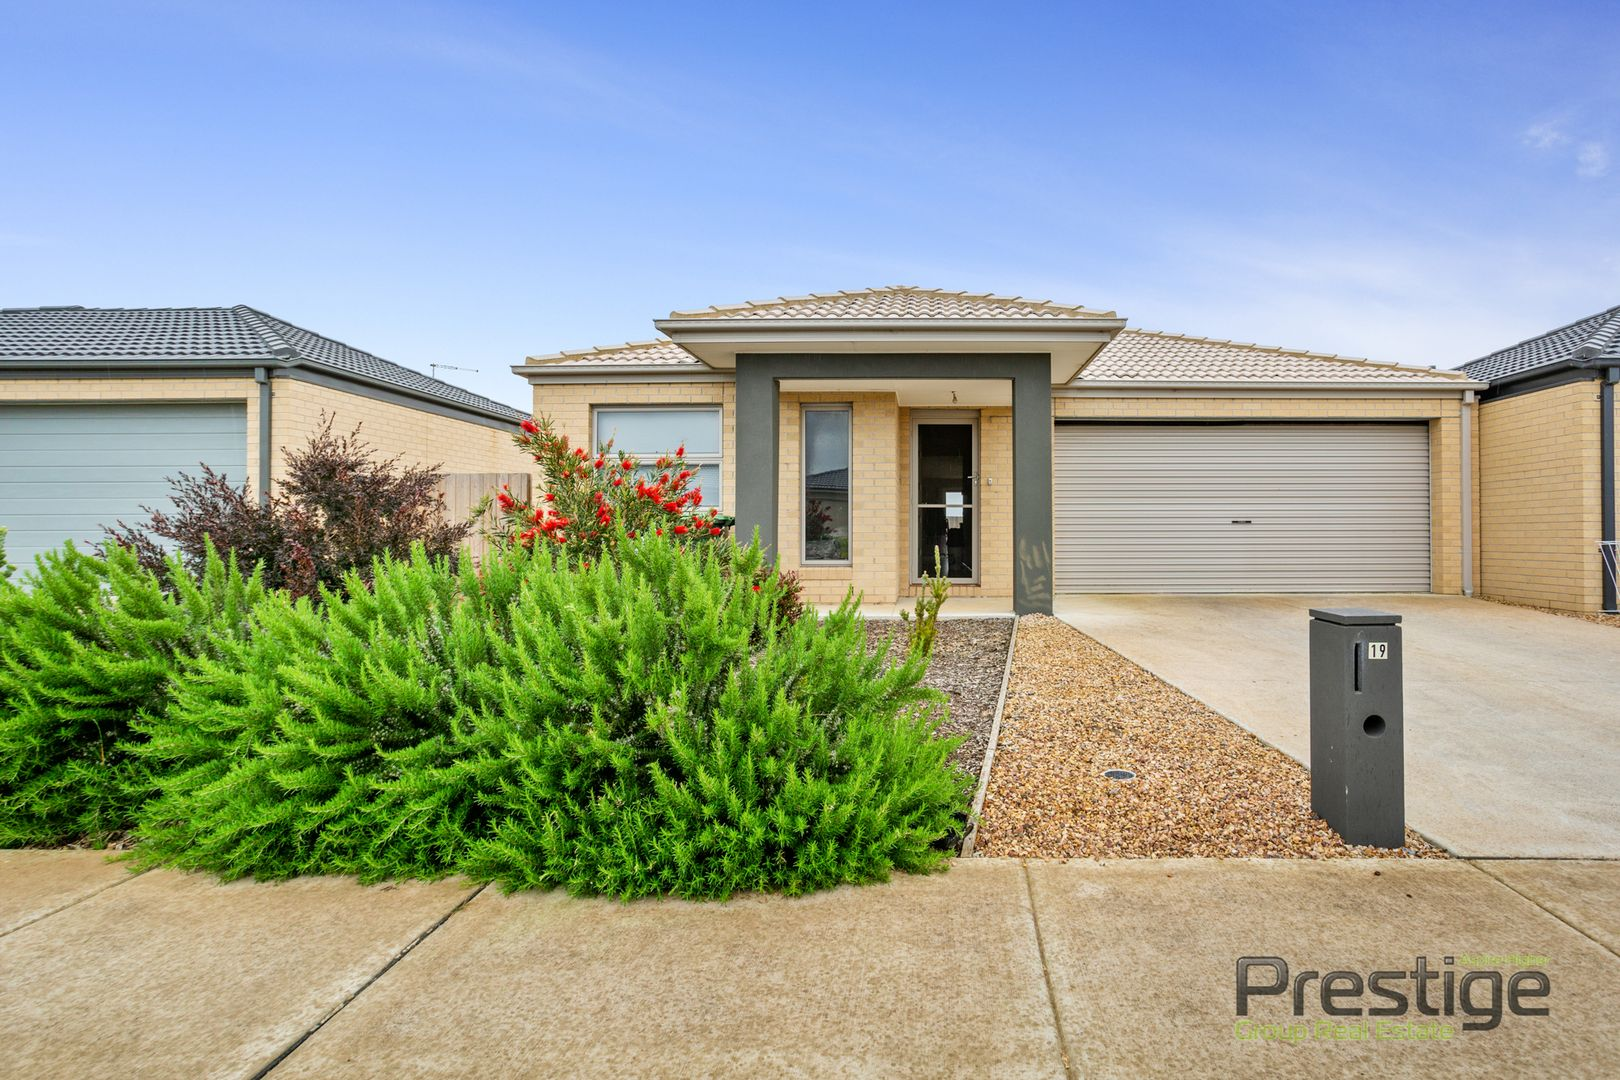 19 Shearwater Drive, Armstrong Creek VIC 3217, Image 0